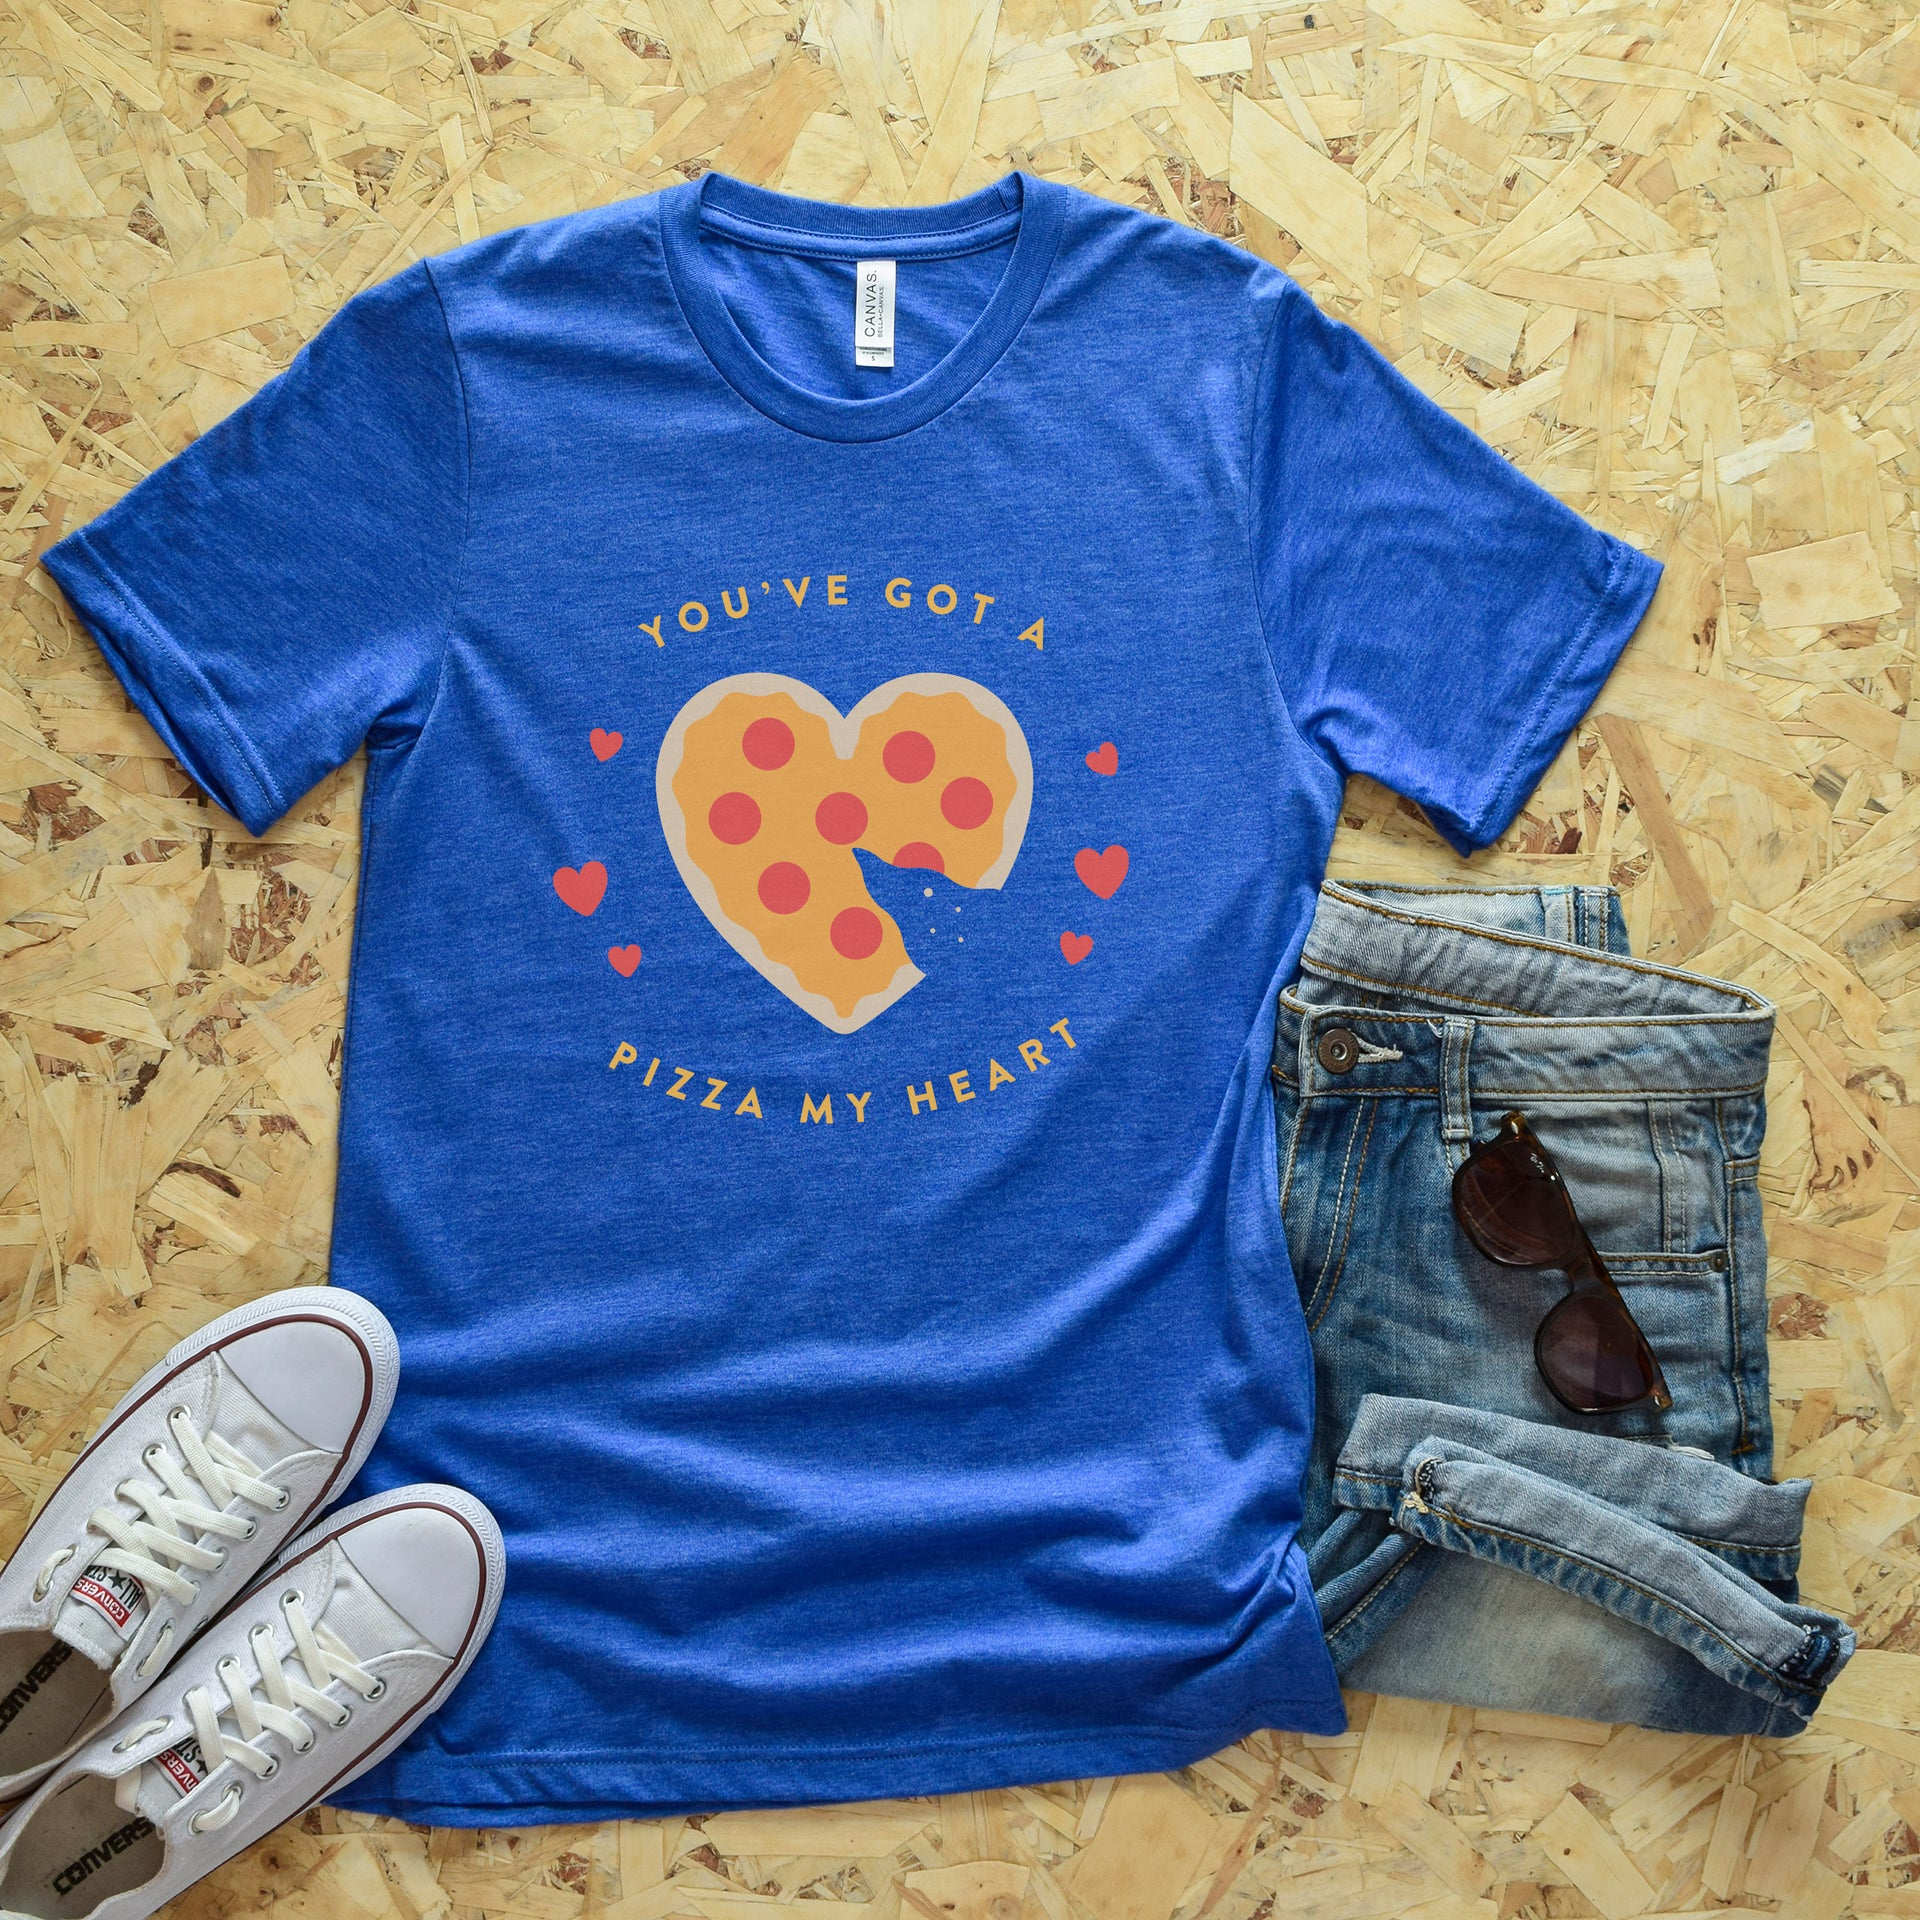 Pizza My Heart Short-Sleeve Unisex T-Shirt